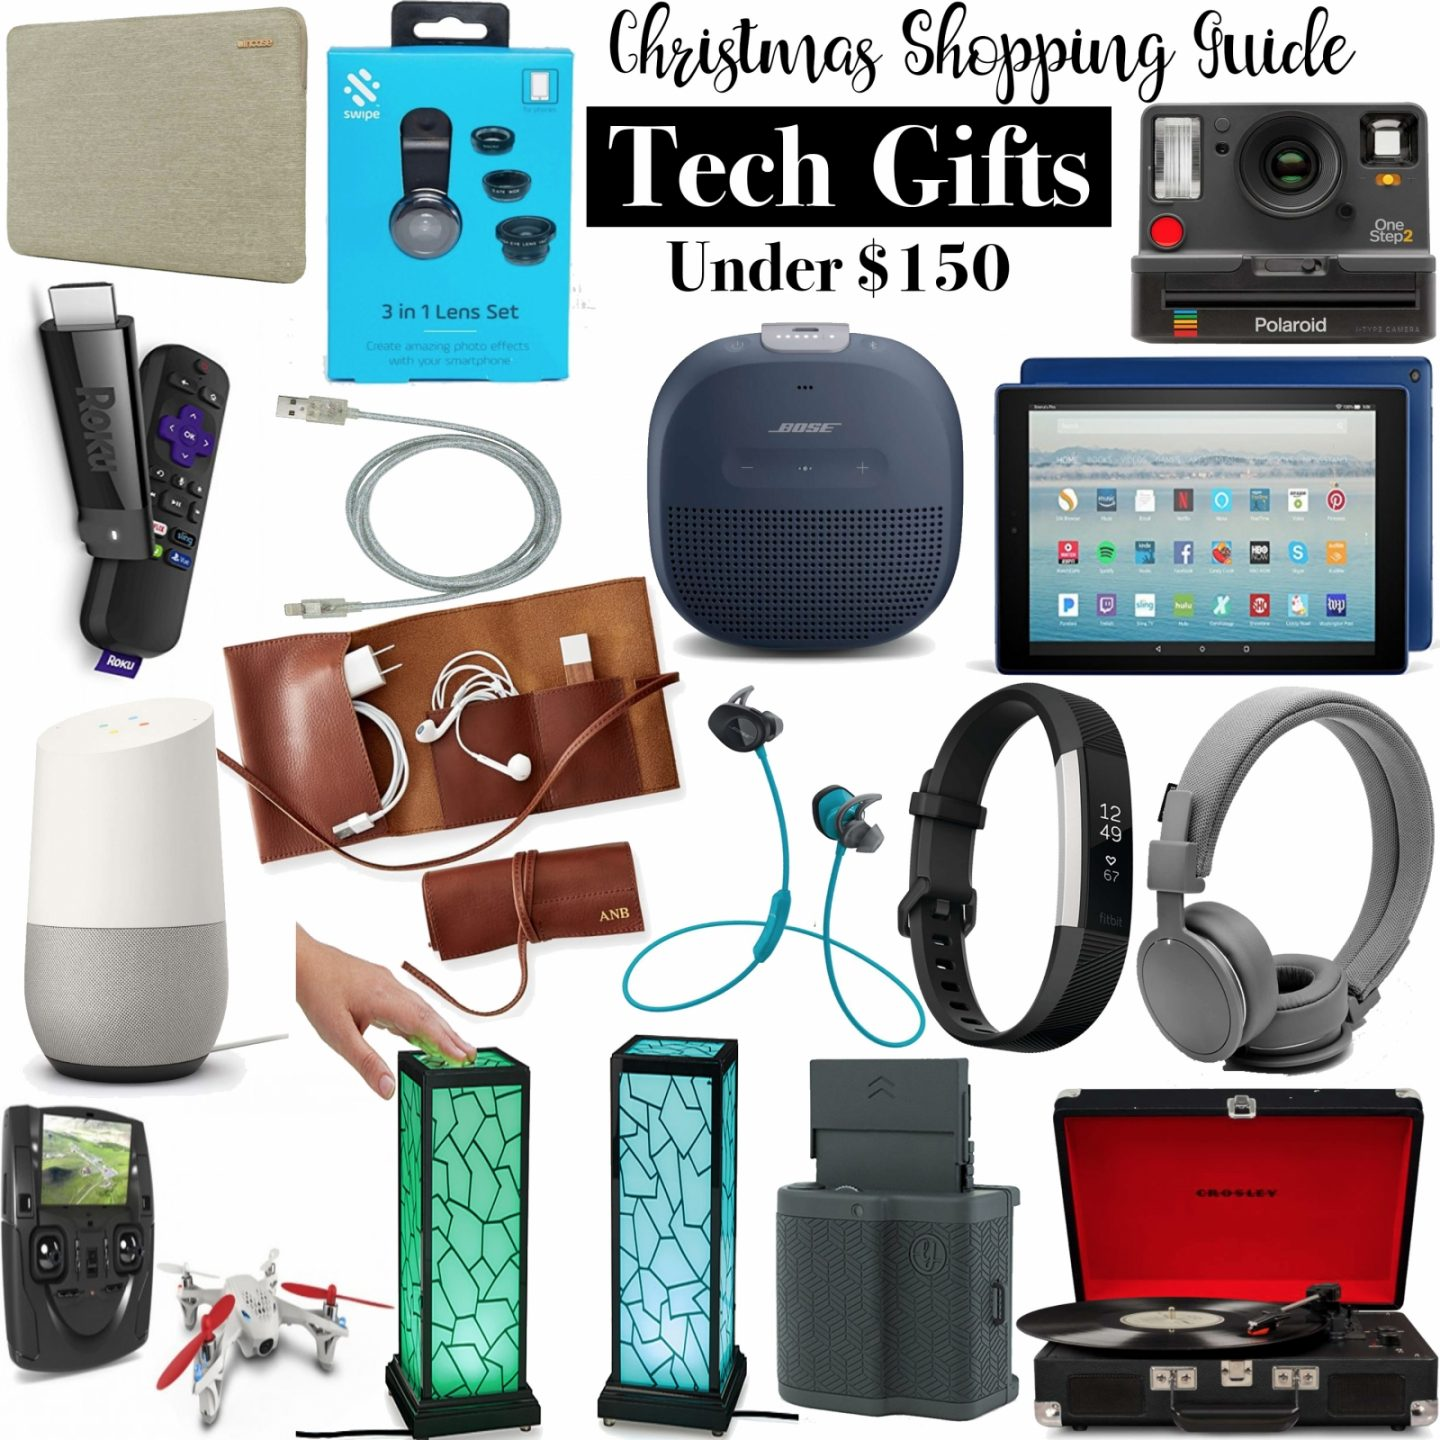 Christmas Shopping Guide: Tech Gifts Under $150 by Washington DC blogger Styled Blonde